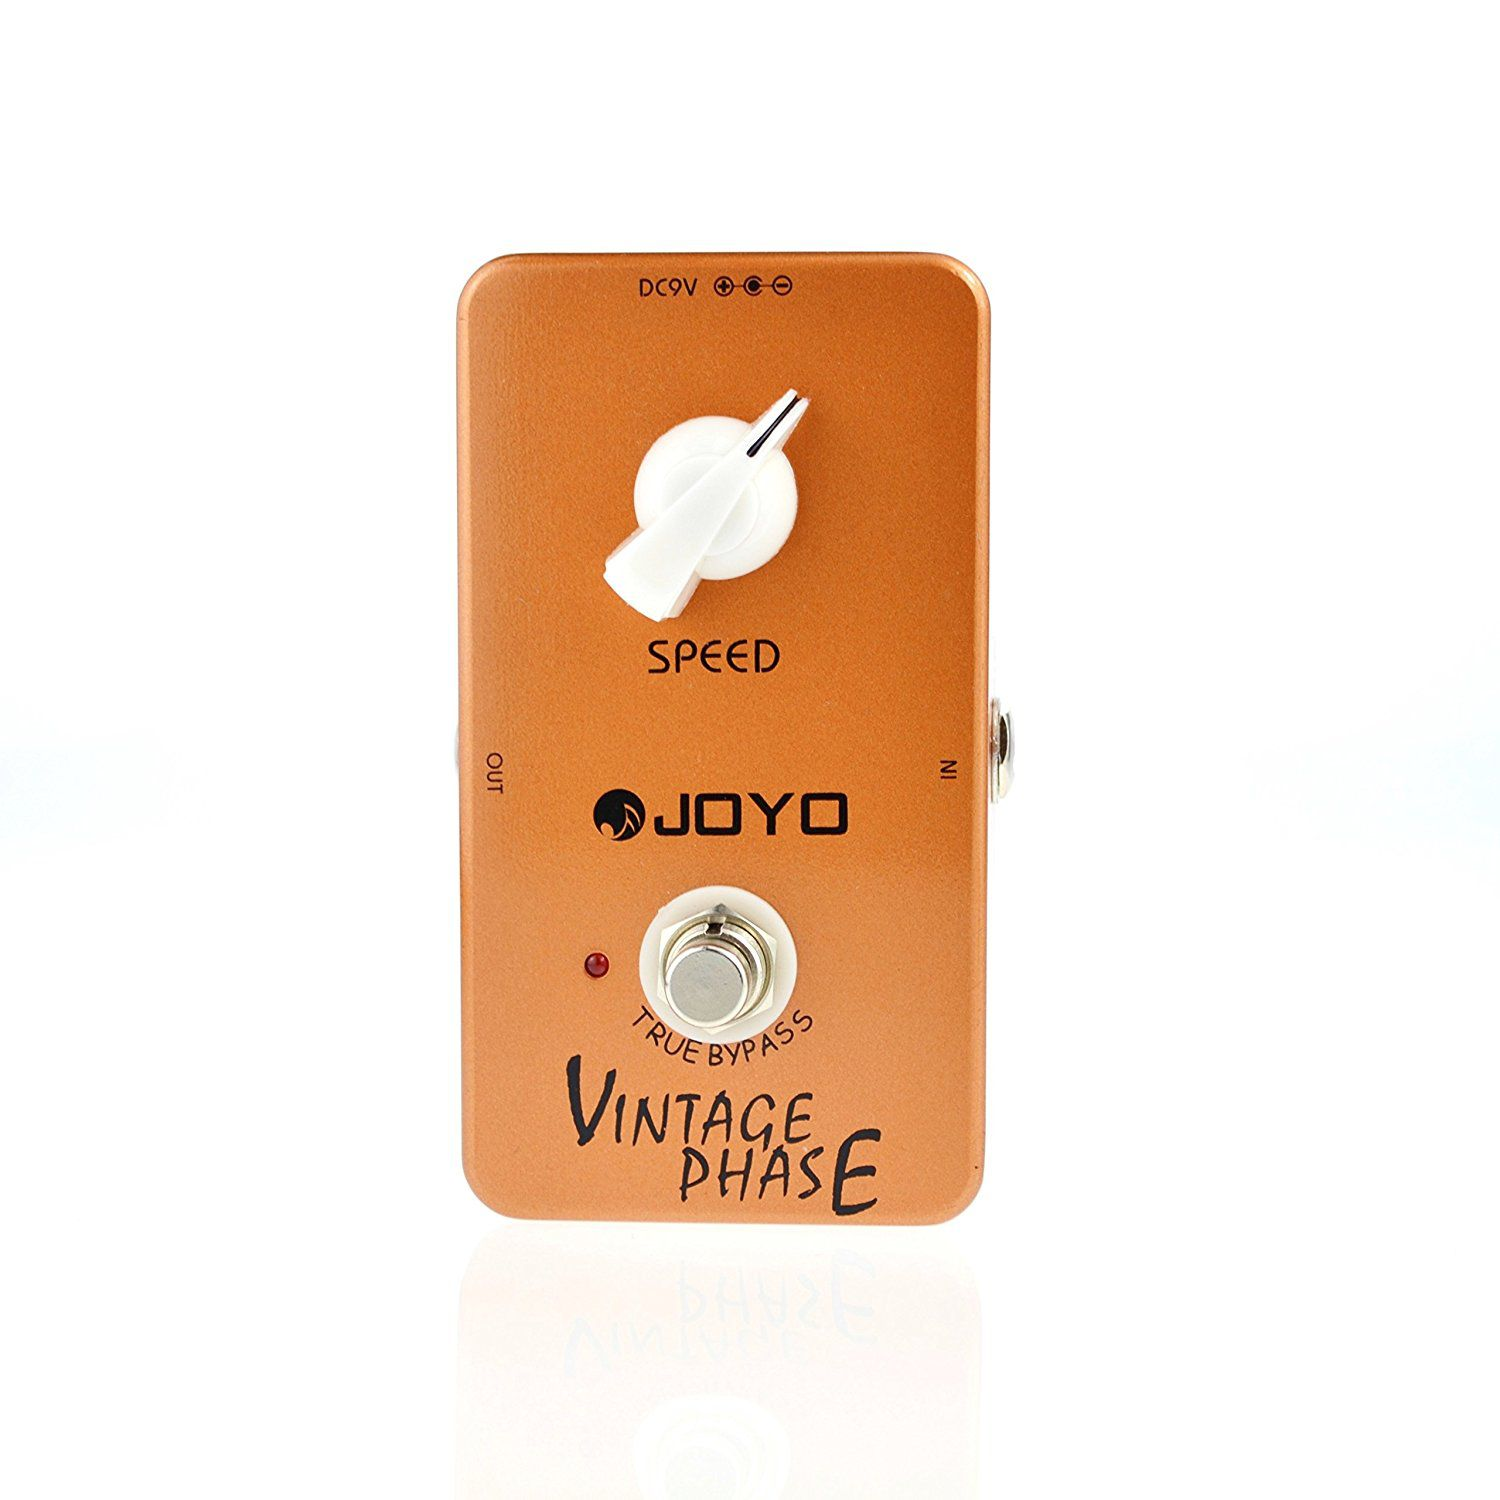 Pedal Digital Joyo Vintage Phase